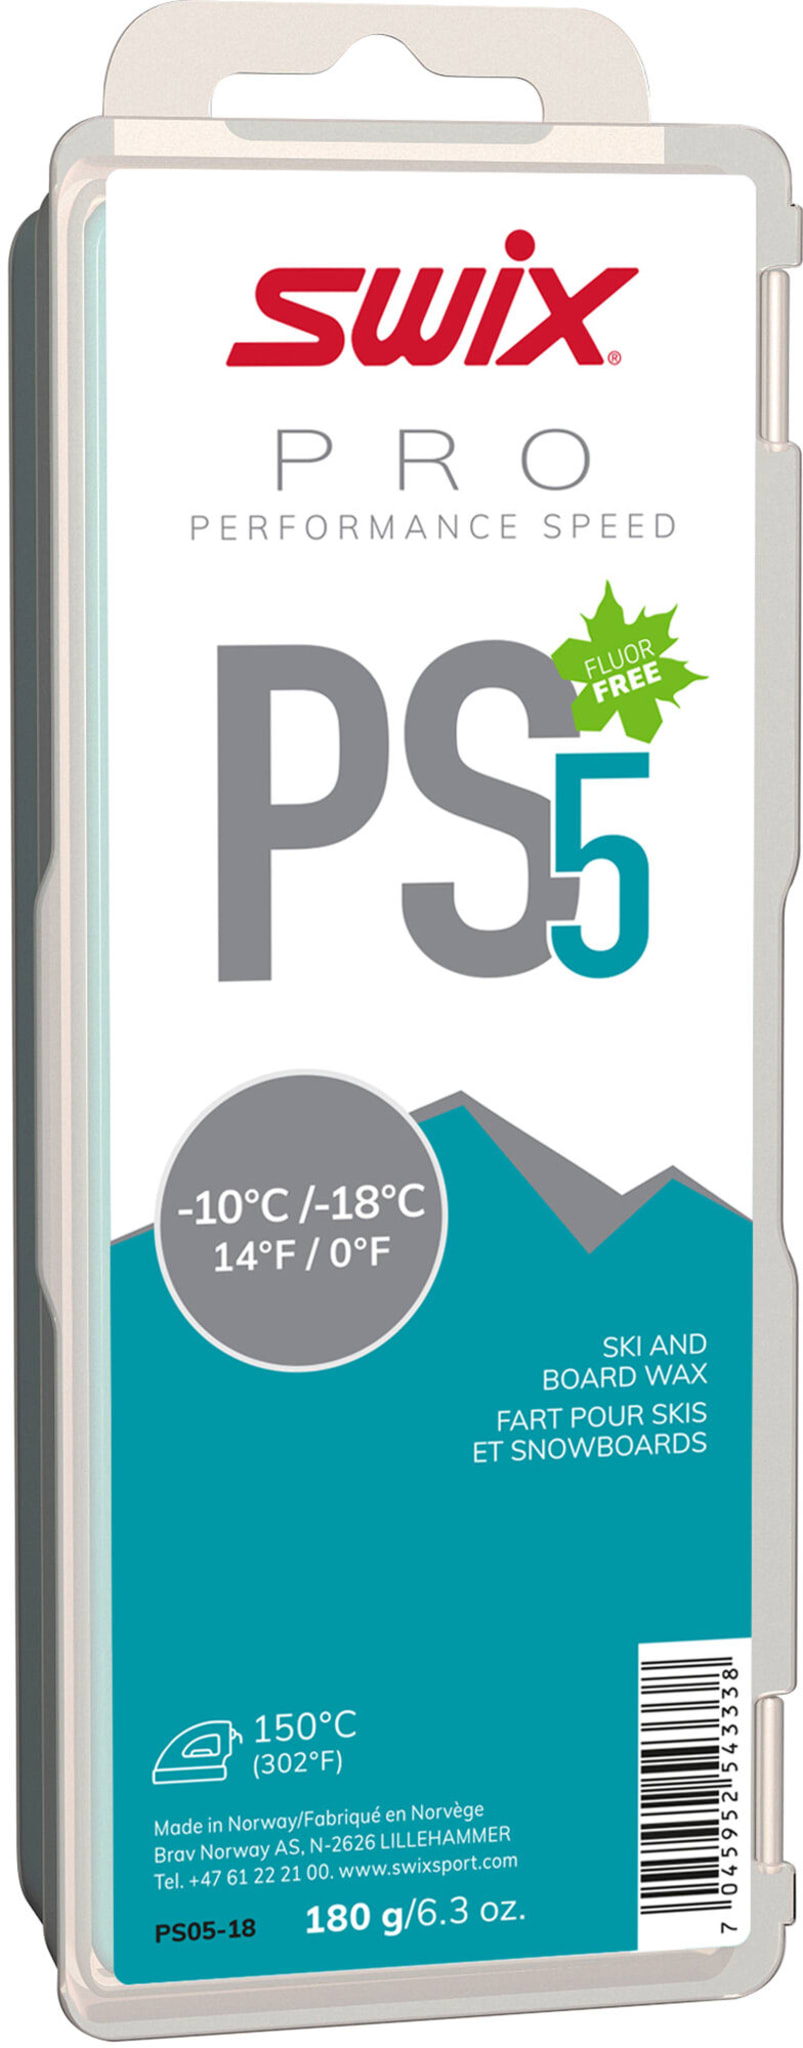 PS-Serie 180g